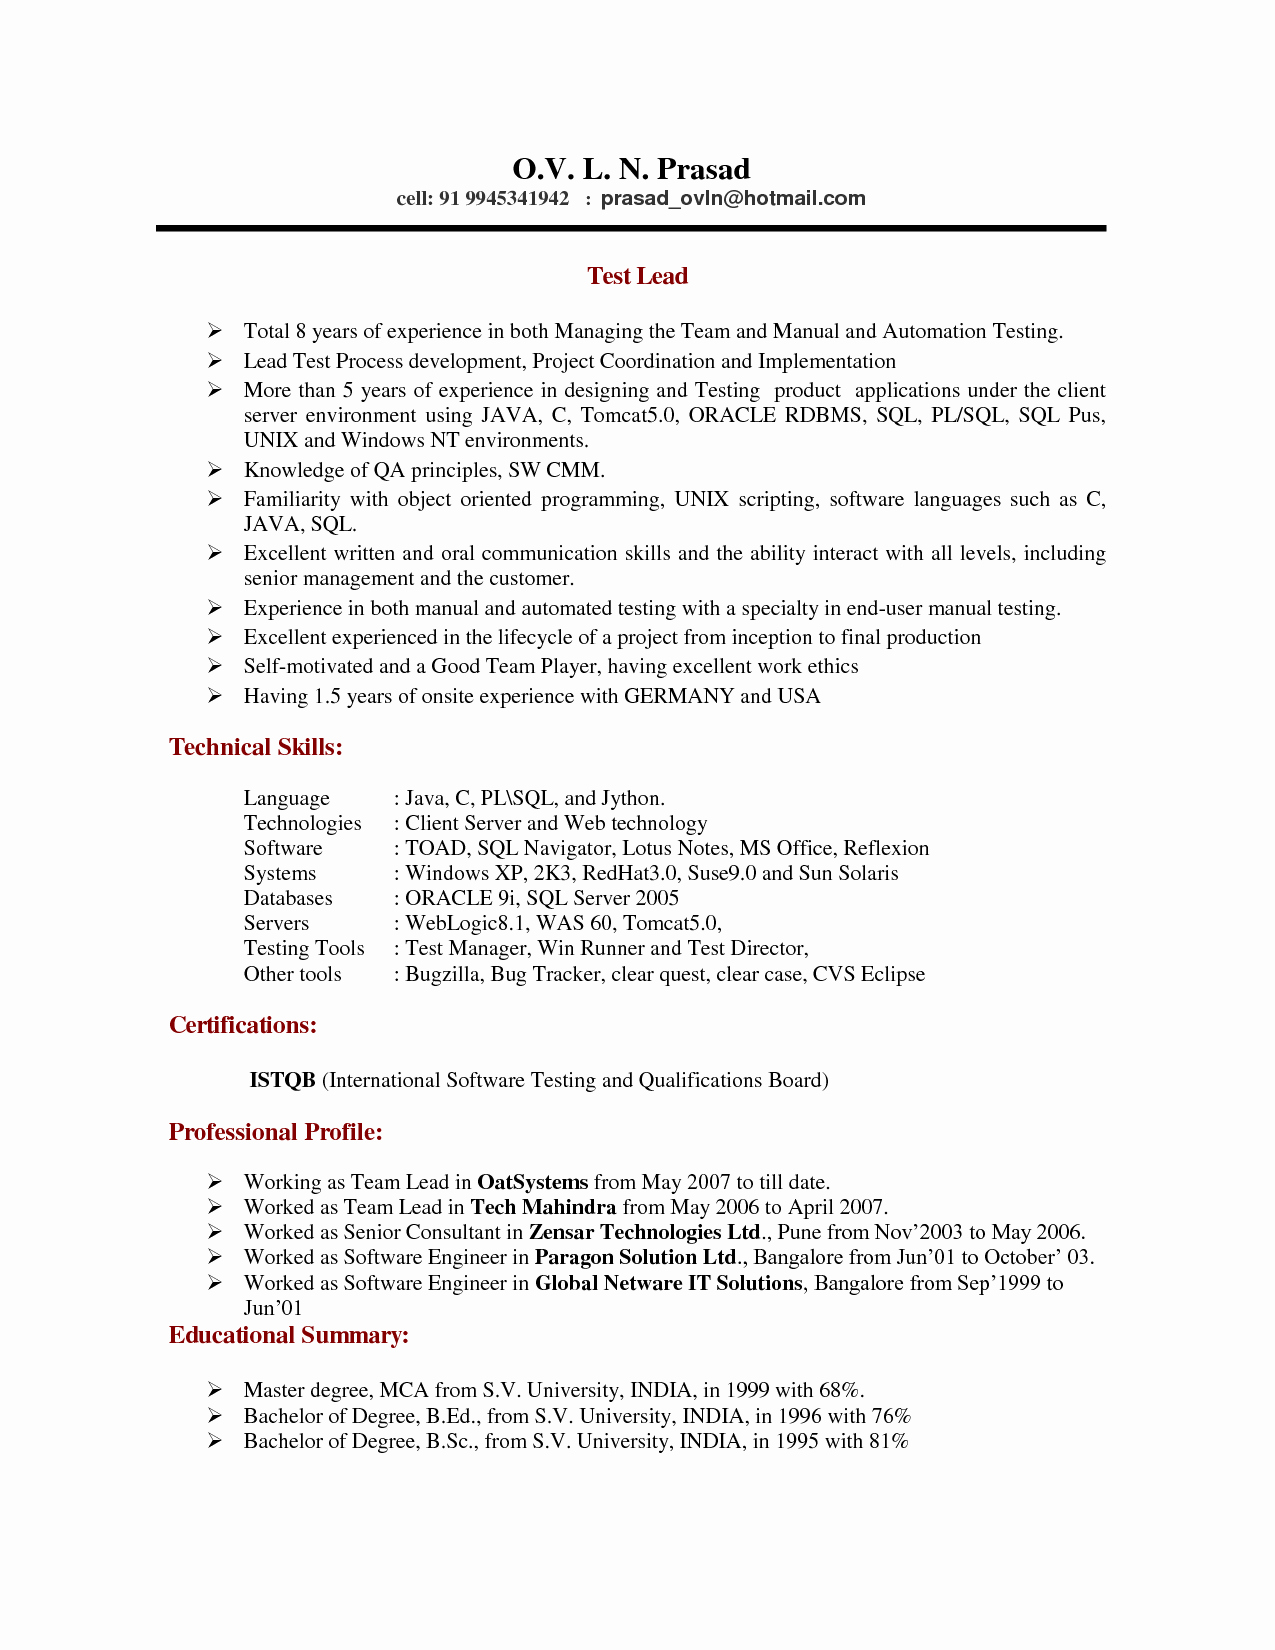 Medical Scribe Cover Letter No Experience Lovely Mainframe Developer Resume Examples Resume Ideas